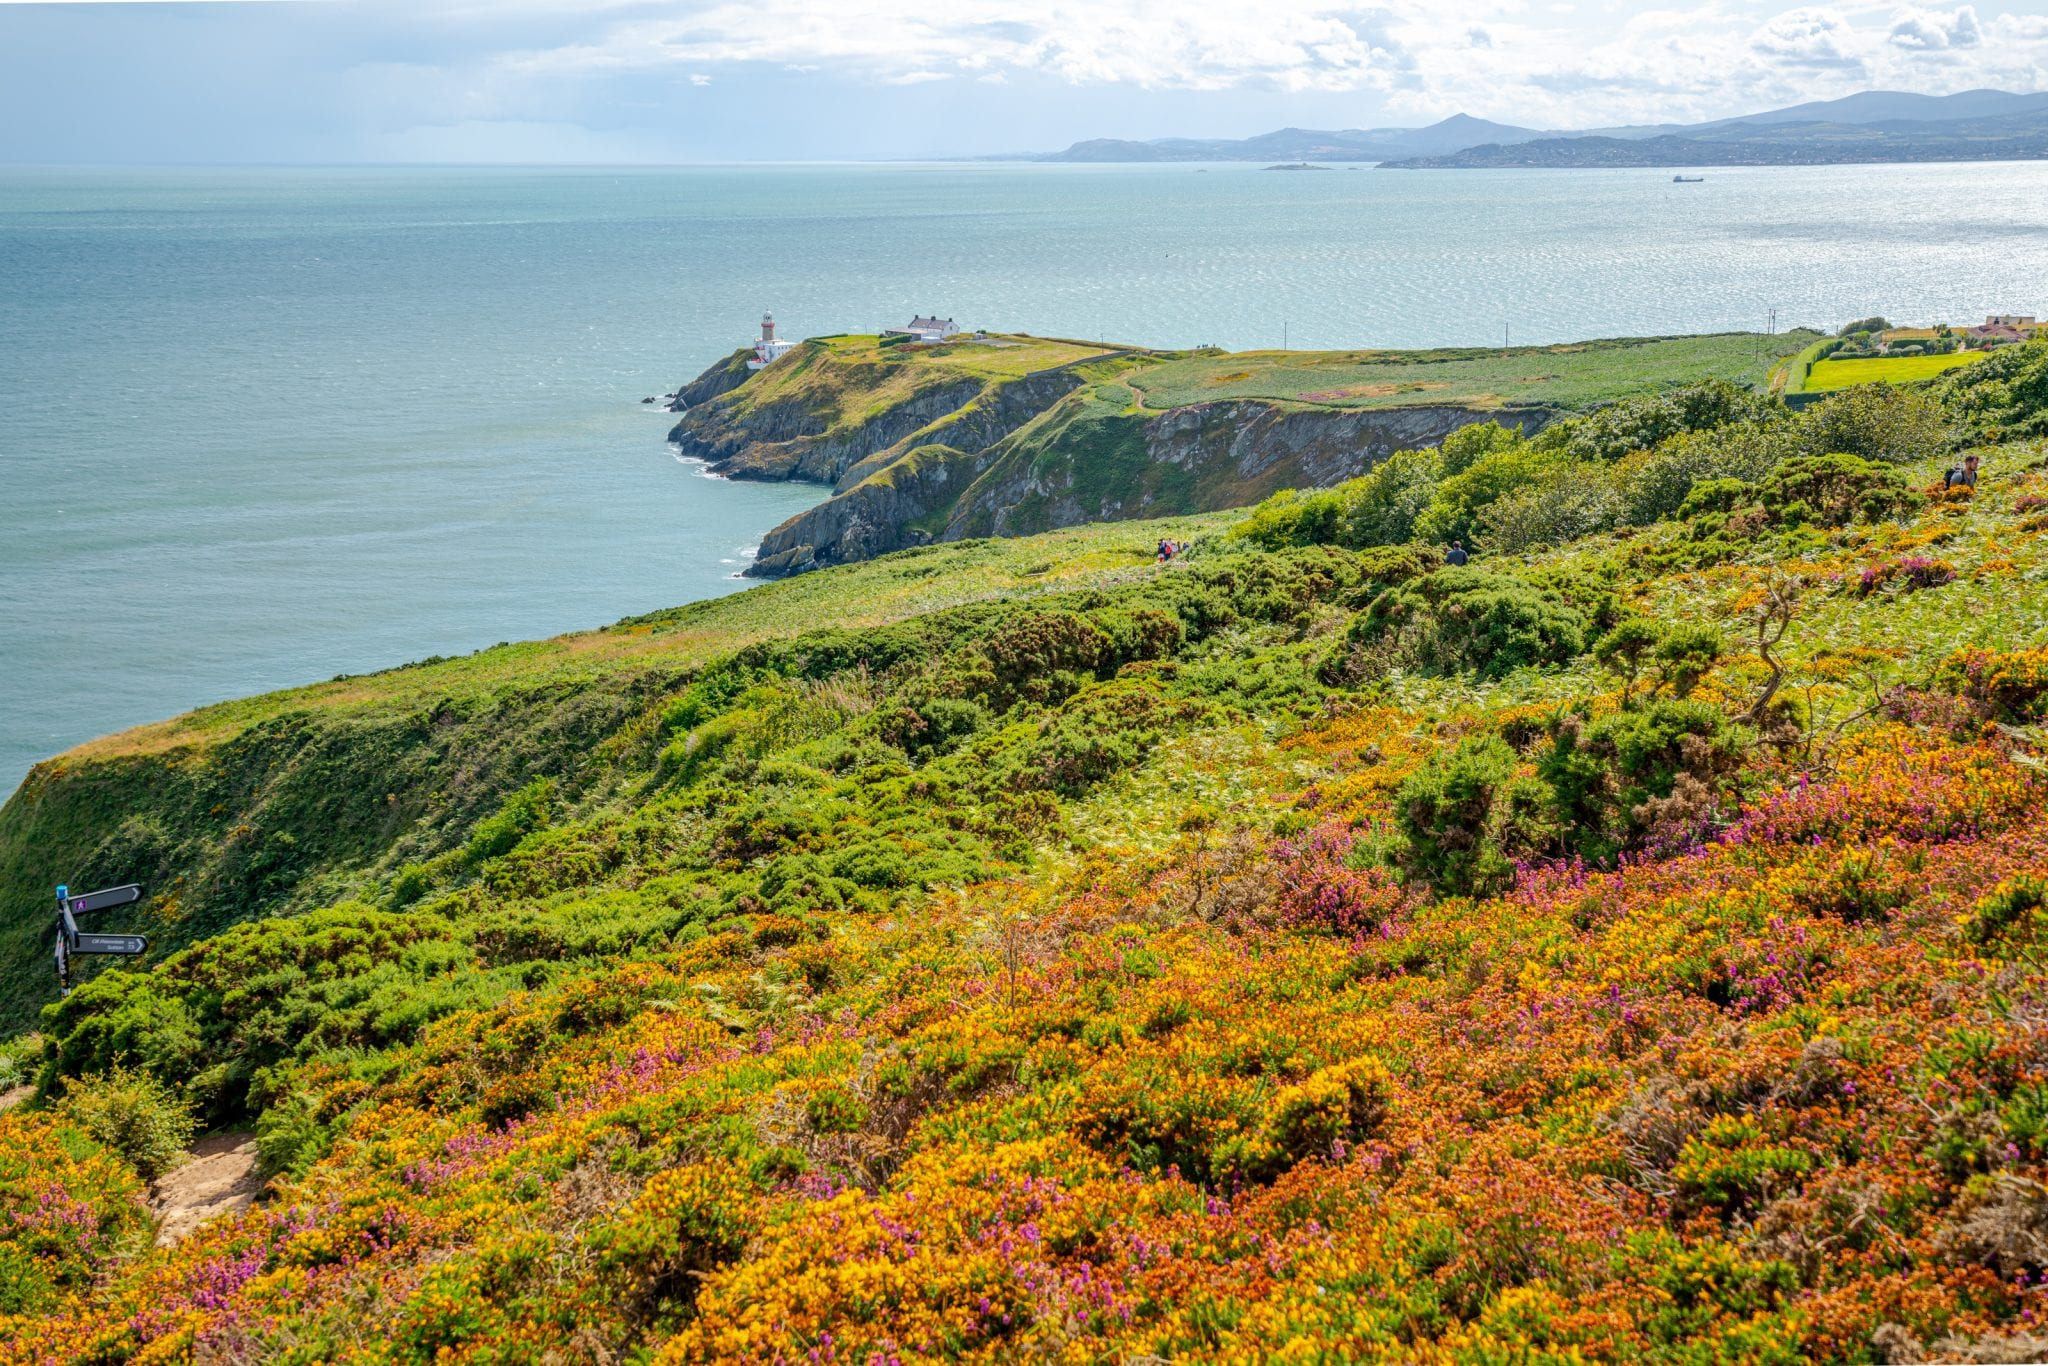 Howth Cliff Walk in Ireland, a fun bonus stop for your 10 day Ireland road trip itinerary. Wildflowers are in the foreground and a lighthouse in the background.